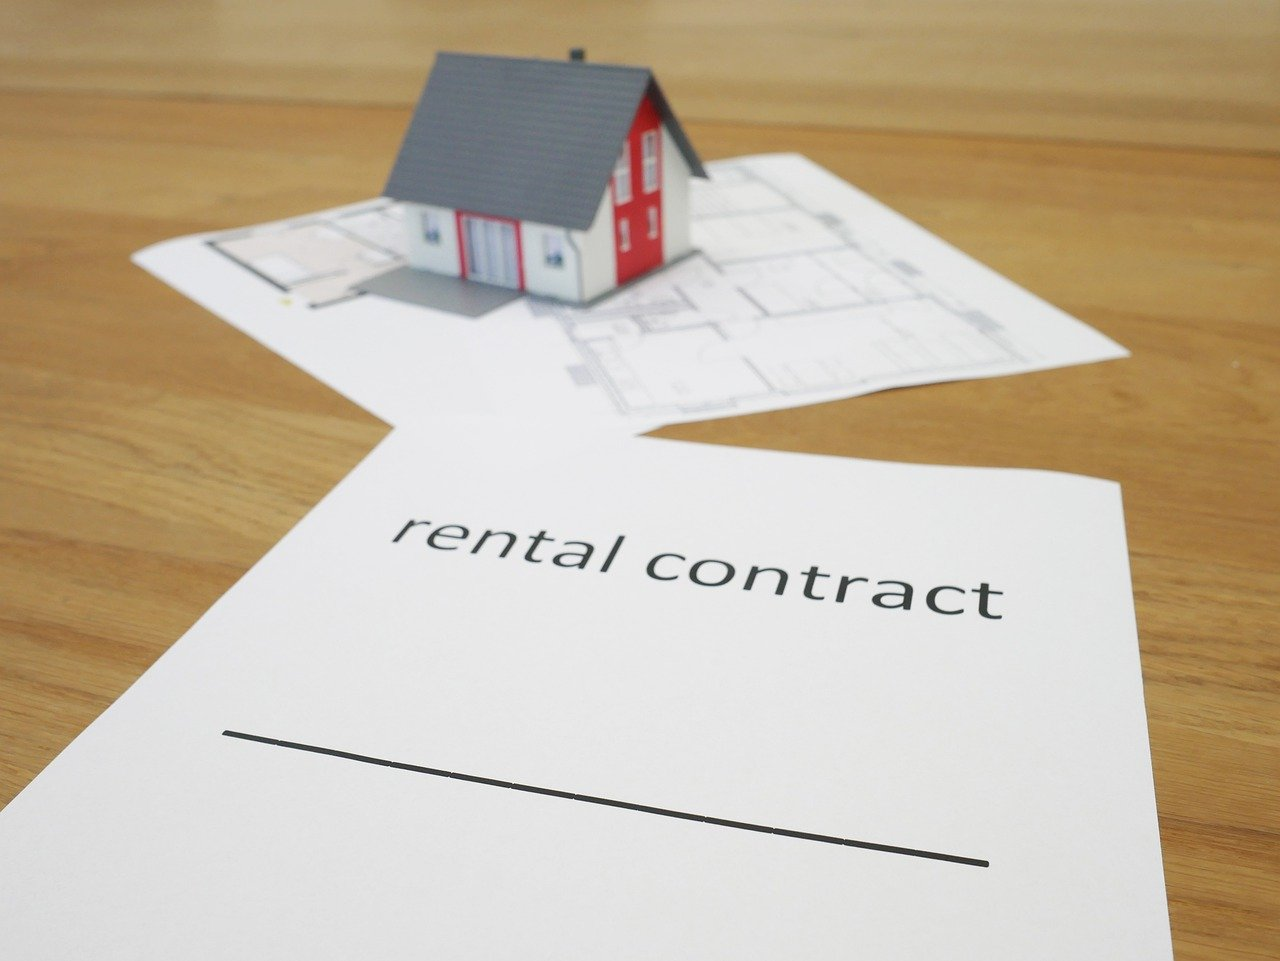 Rental contract form.